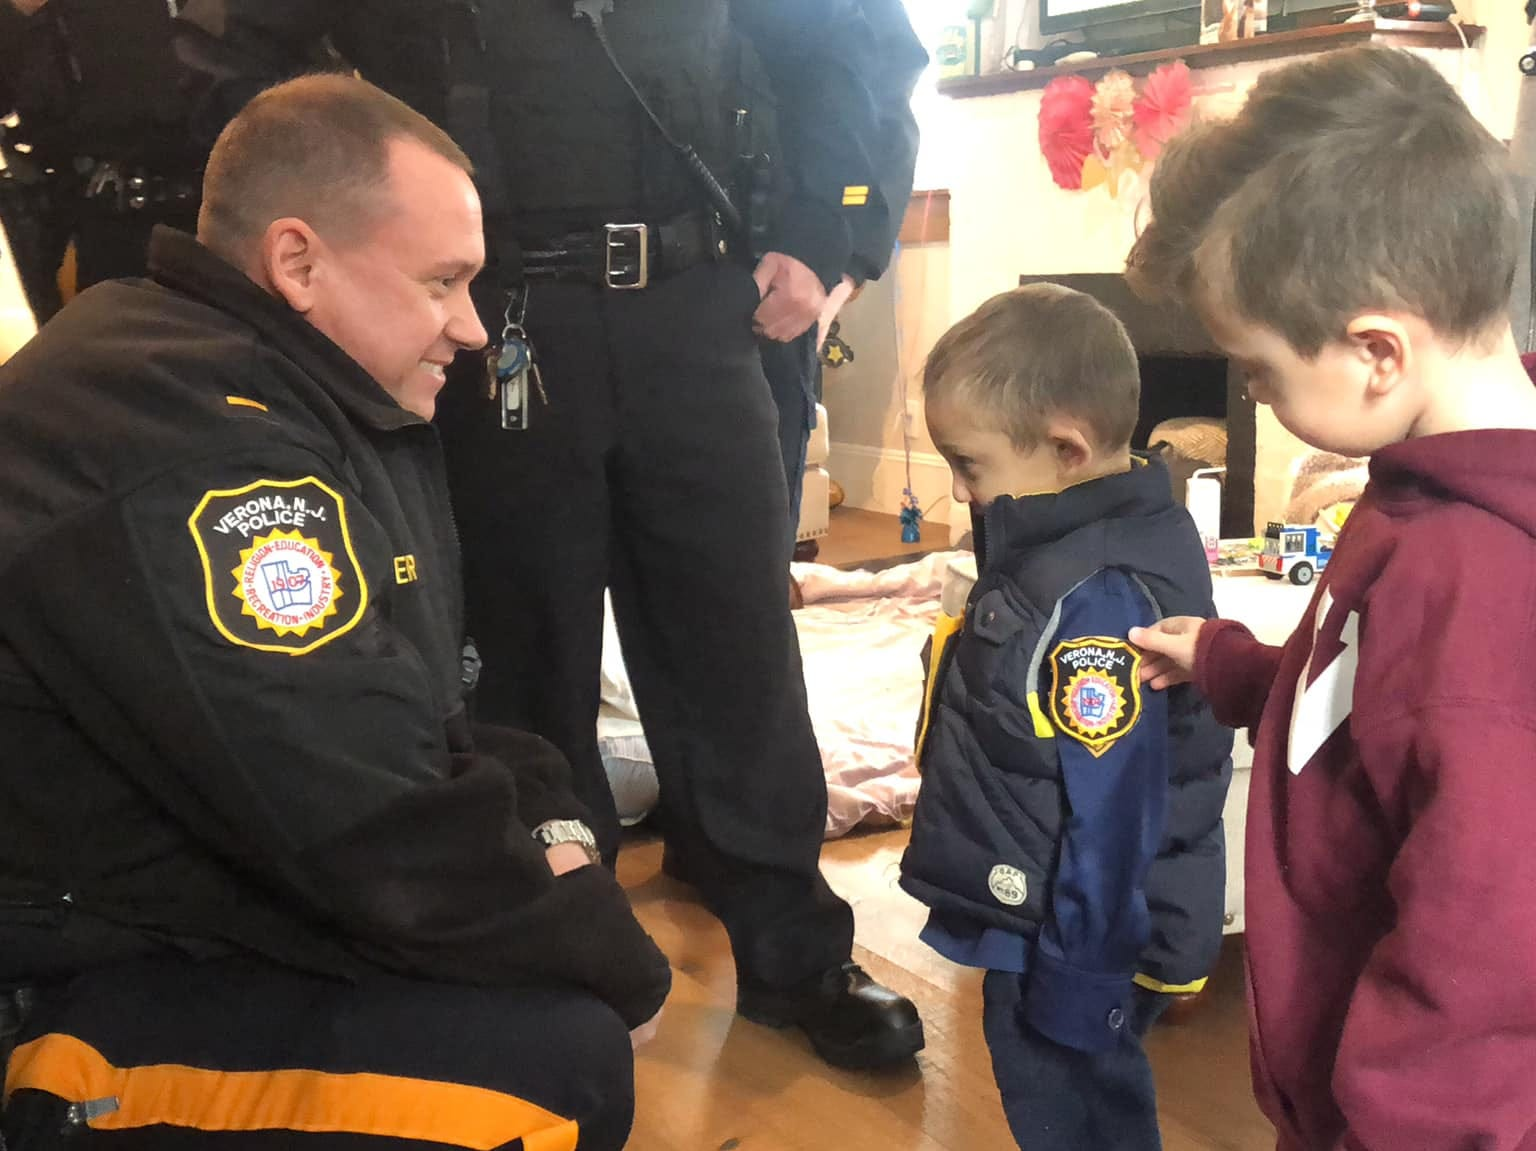 Verona police bring Micco LaRosa and his family to the department Jan. 20, 2019.